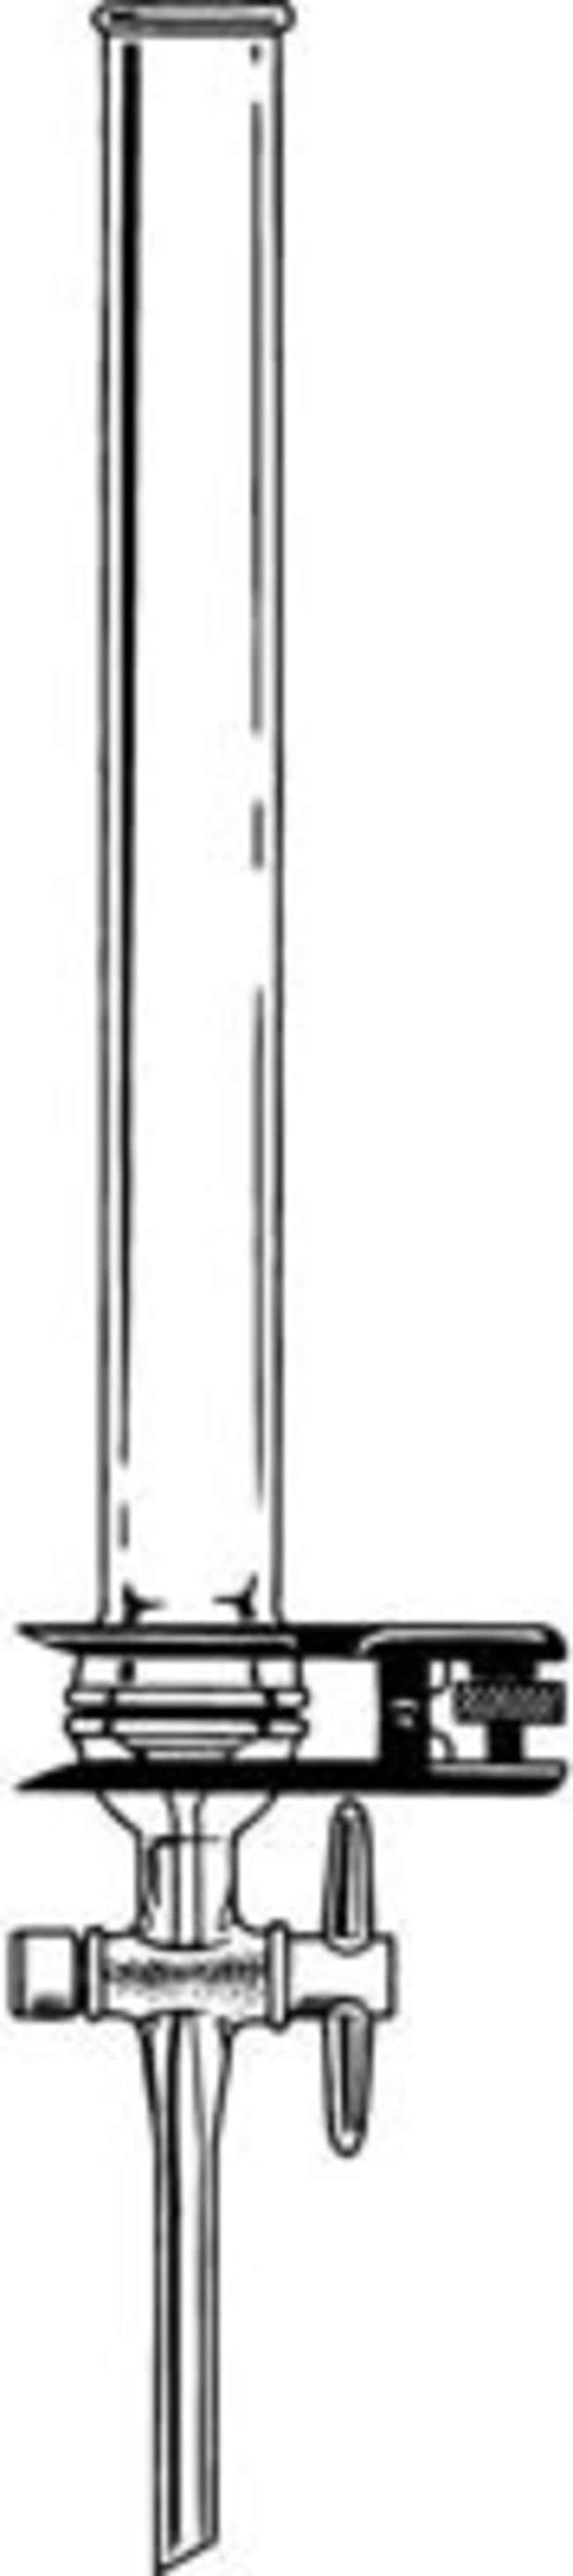 Kimble Chase™Borosilicate Glass Chromatography Column with Removable Fritted Disc Capacidad de columna: 75ml Kimble Chase™Borosilicate Glass Chromatography Column with Removable Fritted Disc